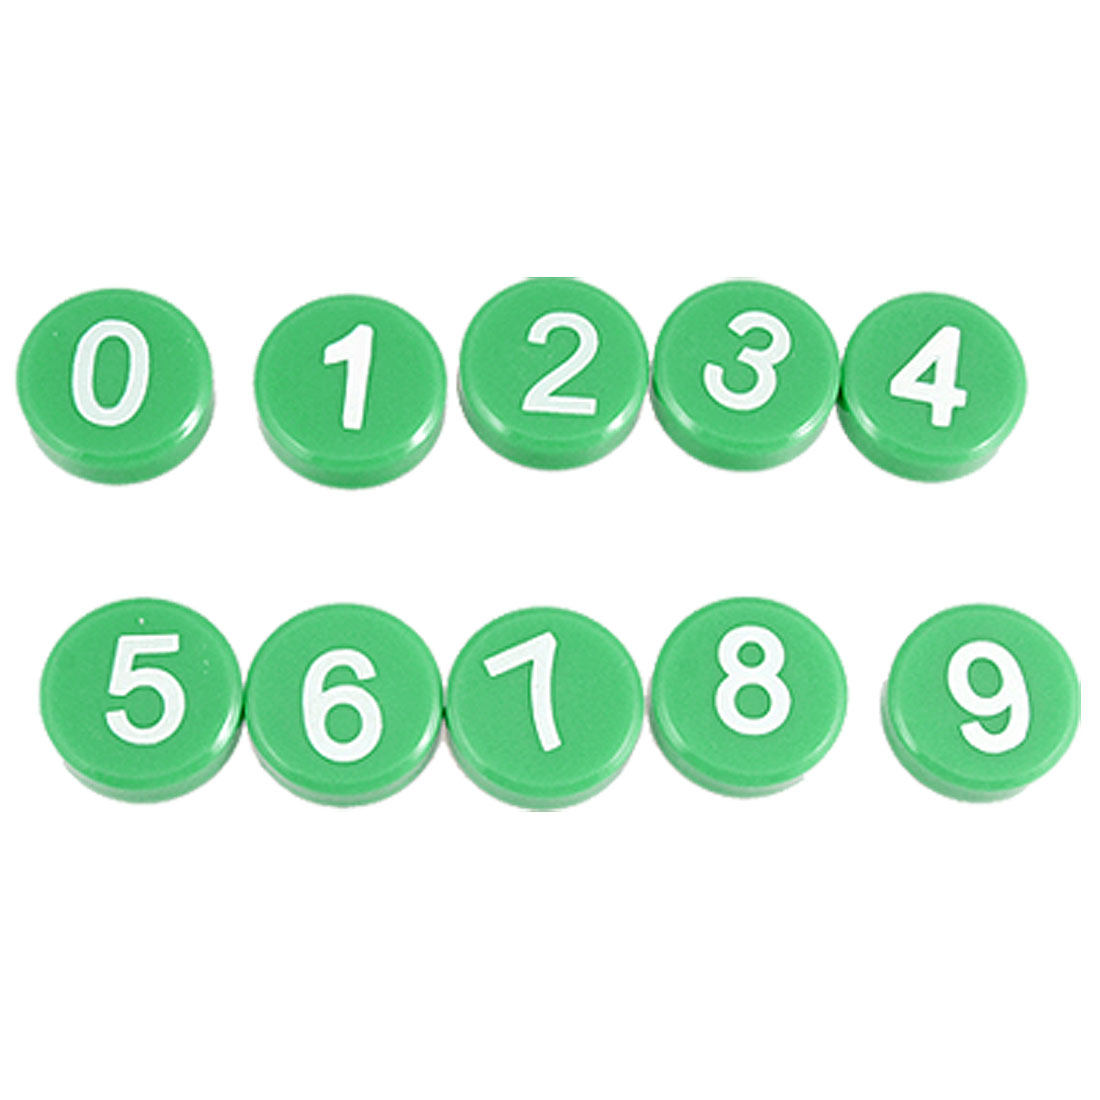 White Arabic Number Green Magnetic Round Button Refrigerator Sticker 10 Pcs